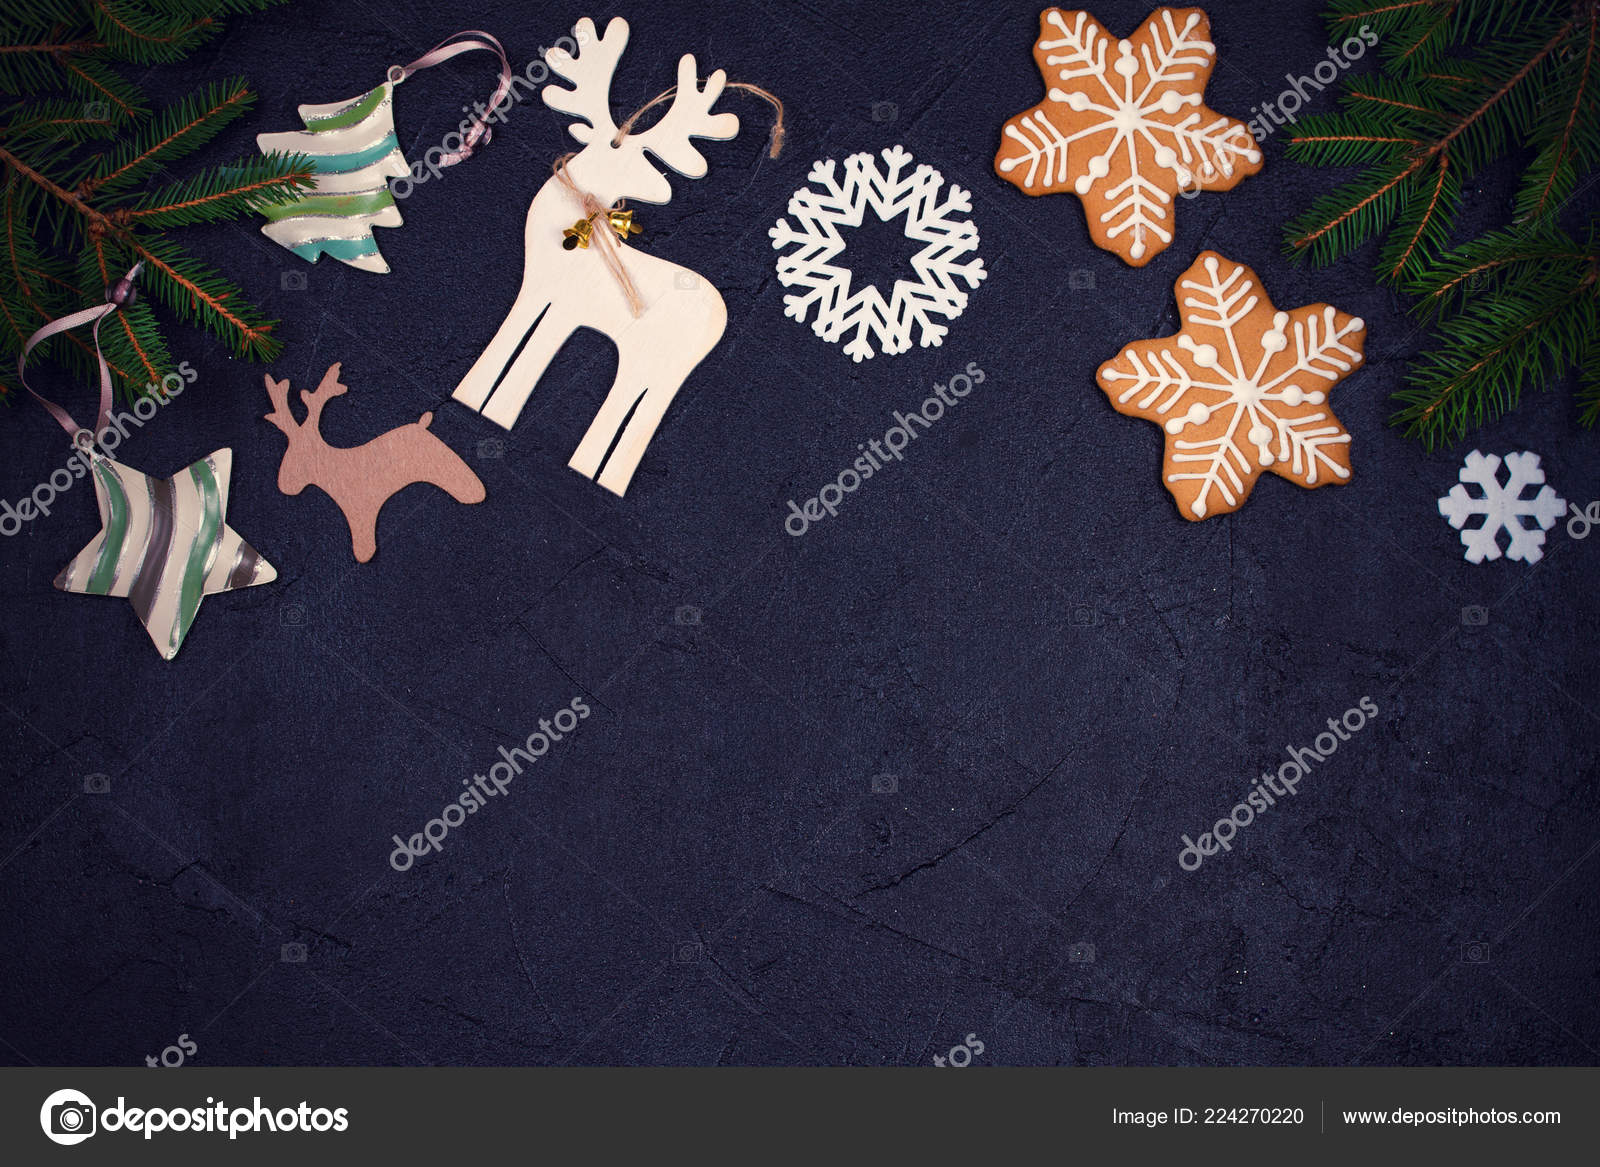 christmas and new year border or frame on black background winter holidays concept greeting template top view toned photo by skylinefree